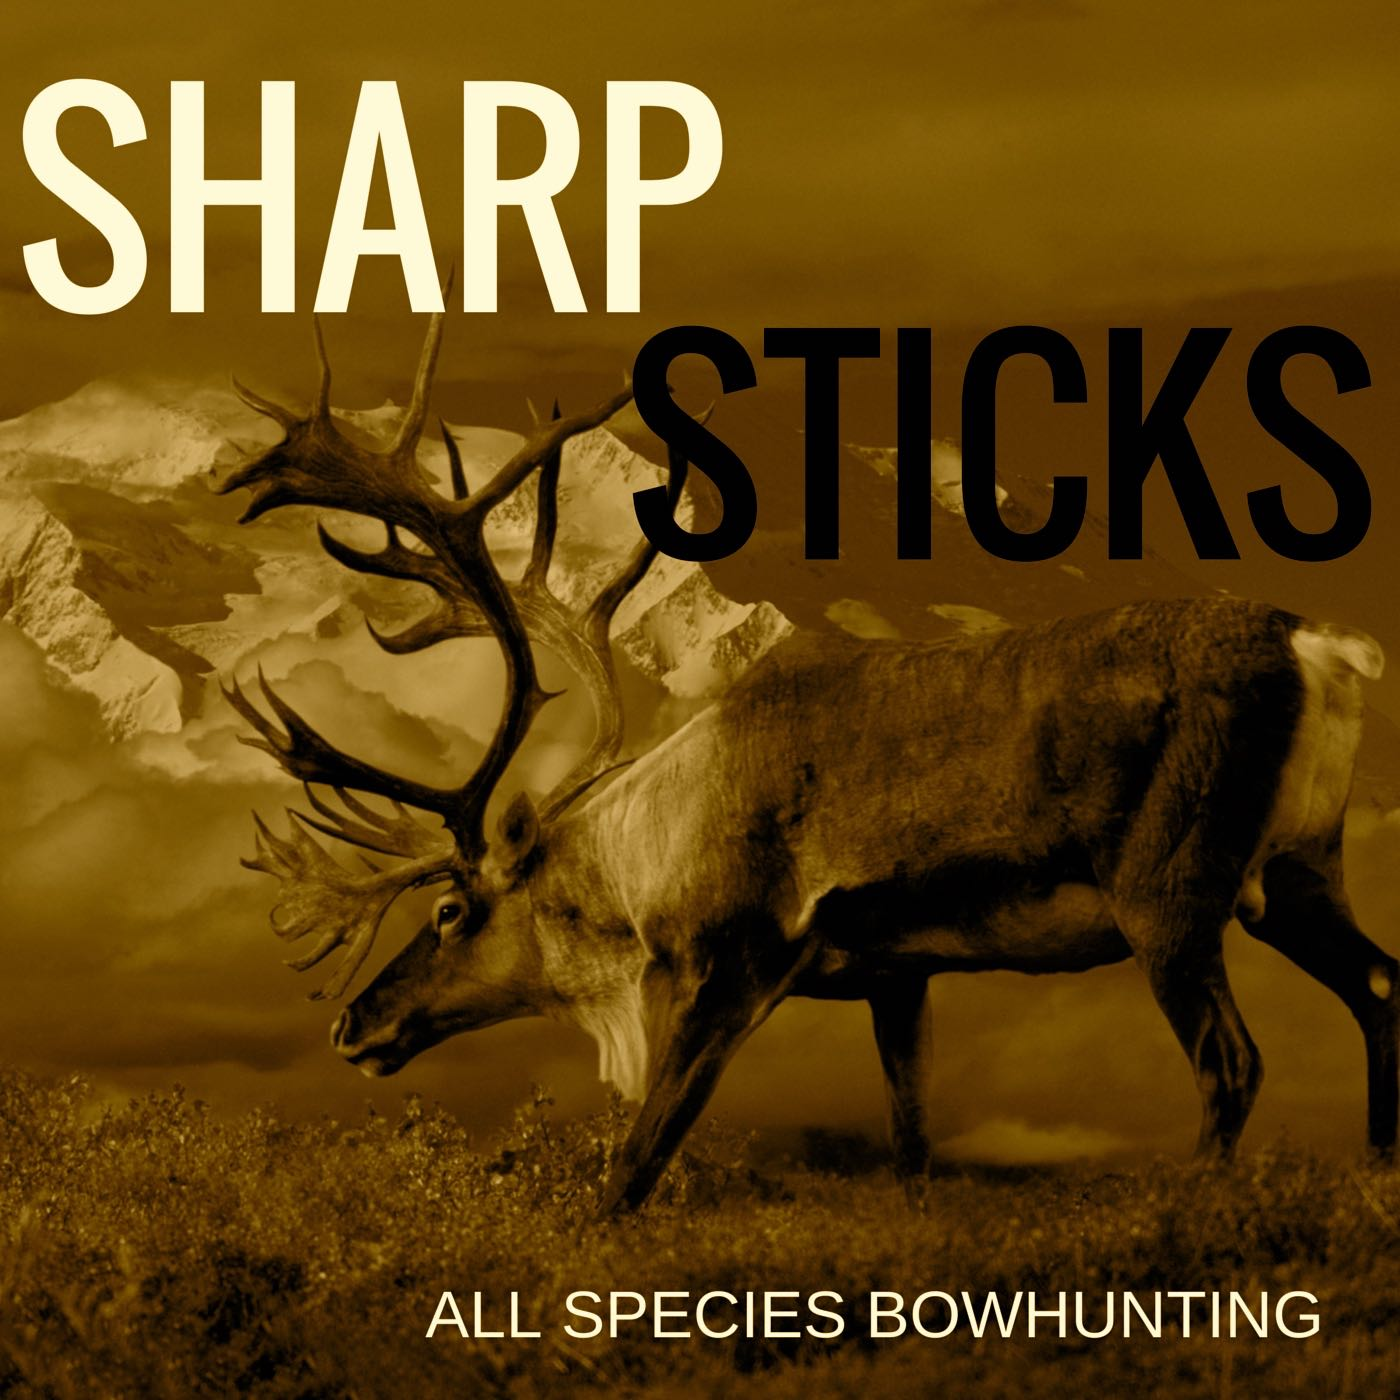 Sharpsticks - All Species Bowhunting